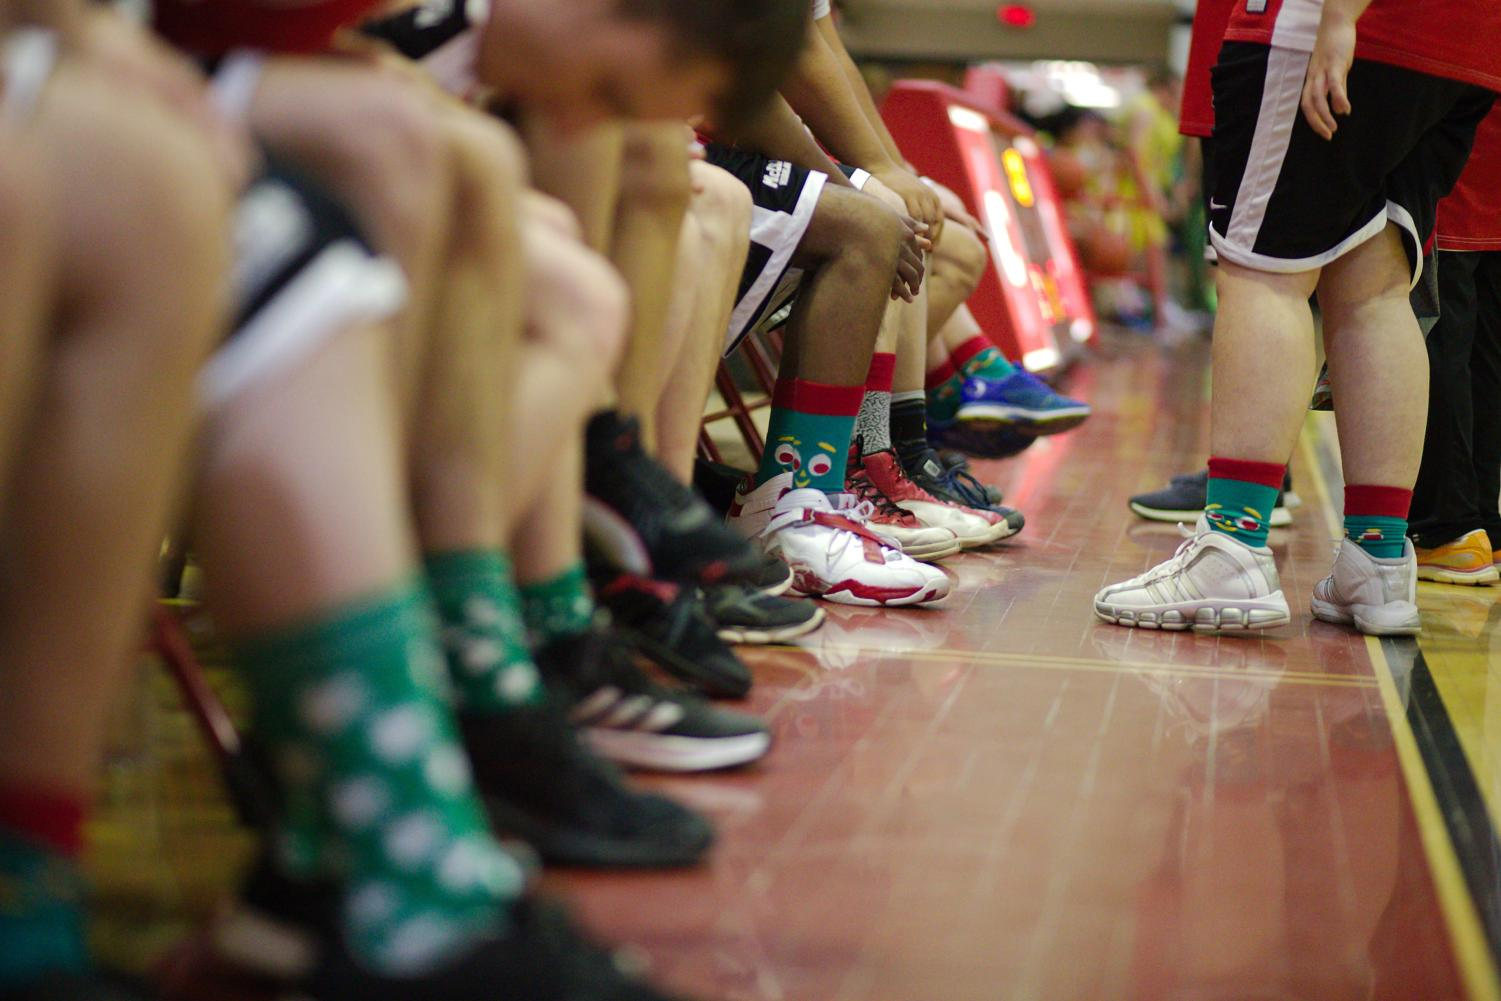 The Special Olympics Basketball team is going to knock your socks off on March 23 at 7pm.